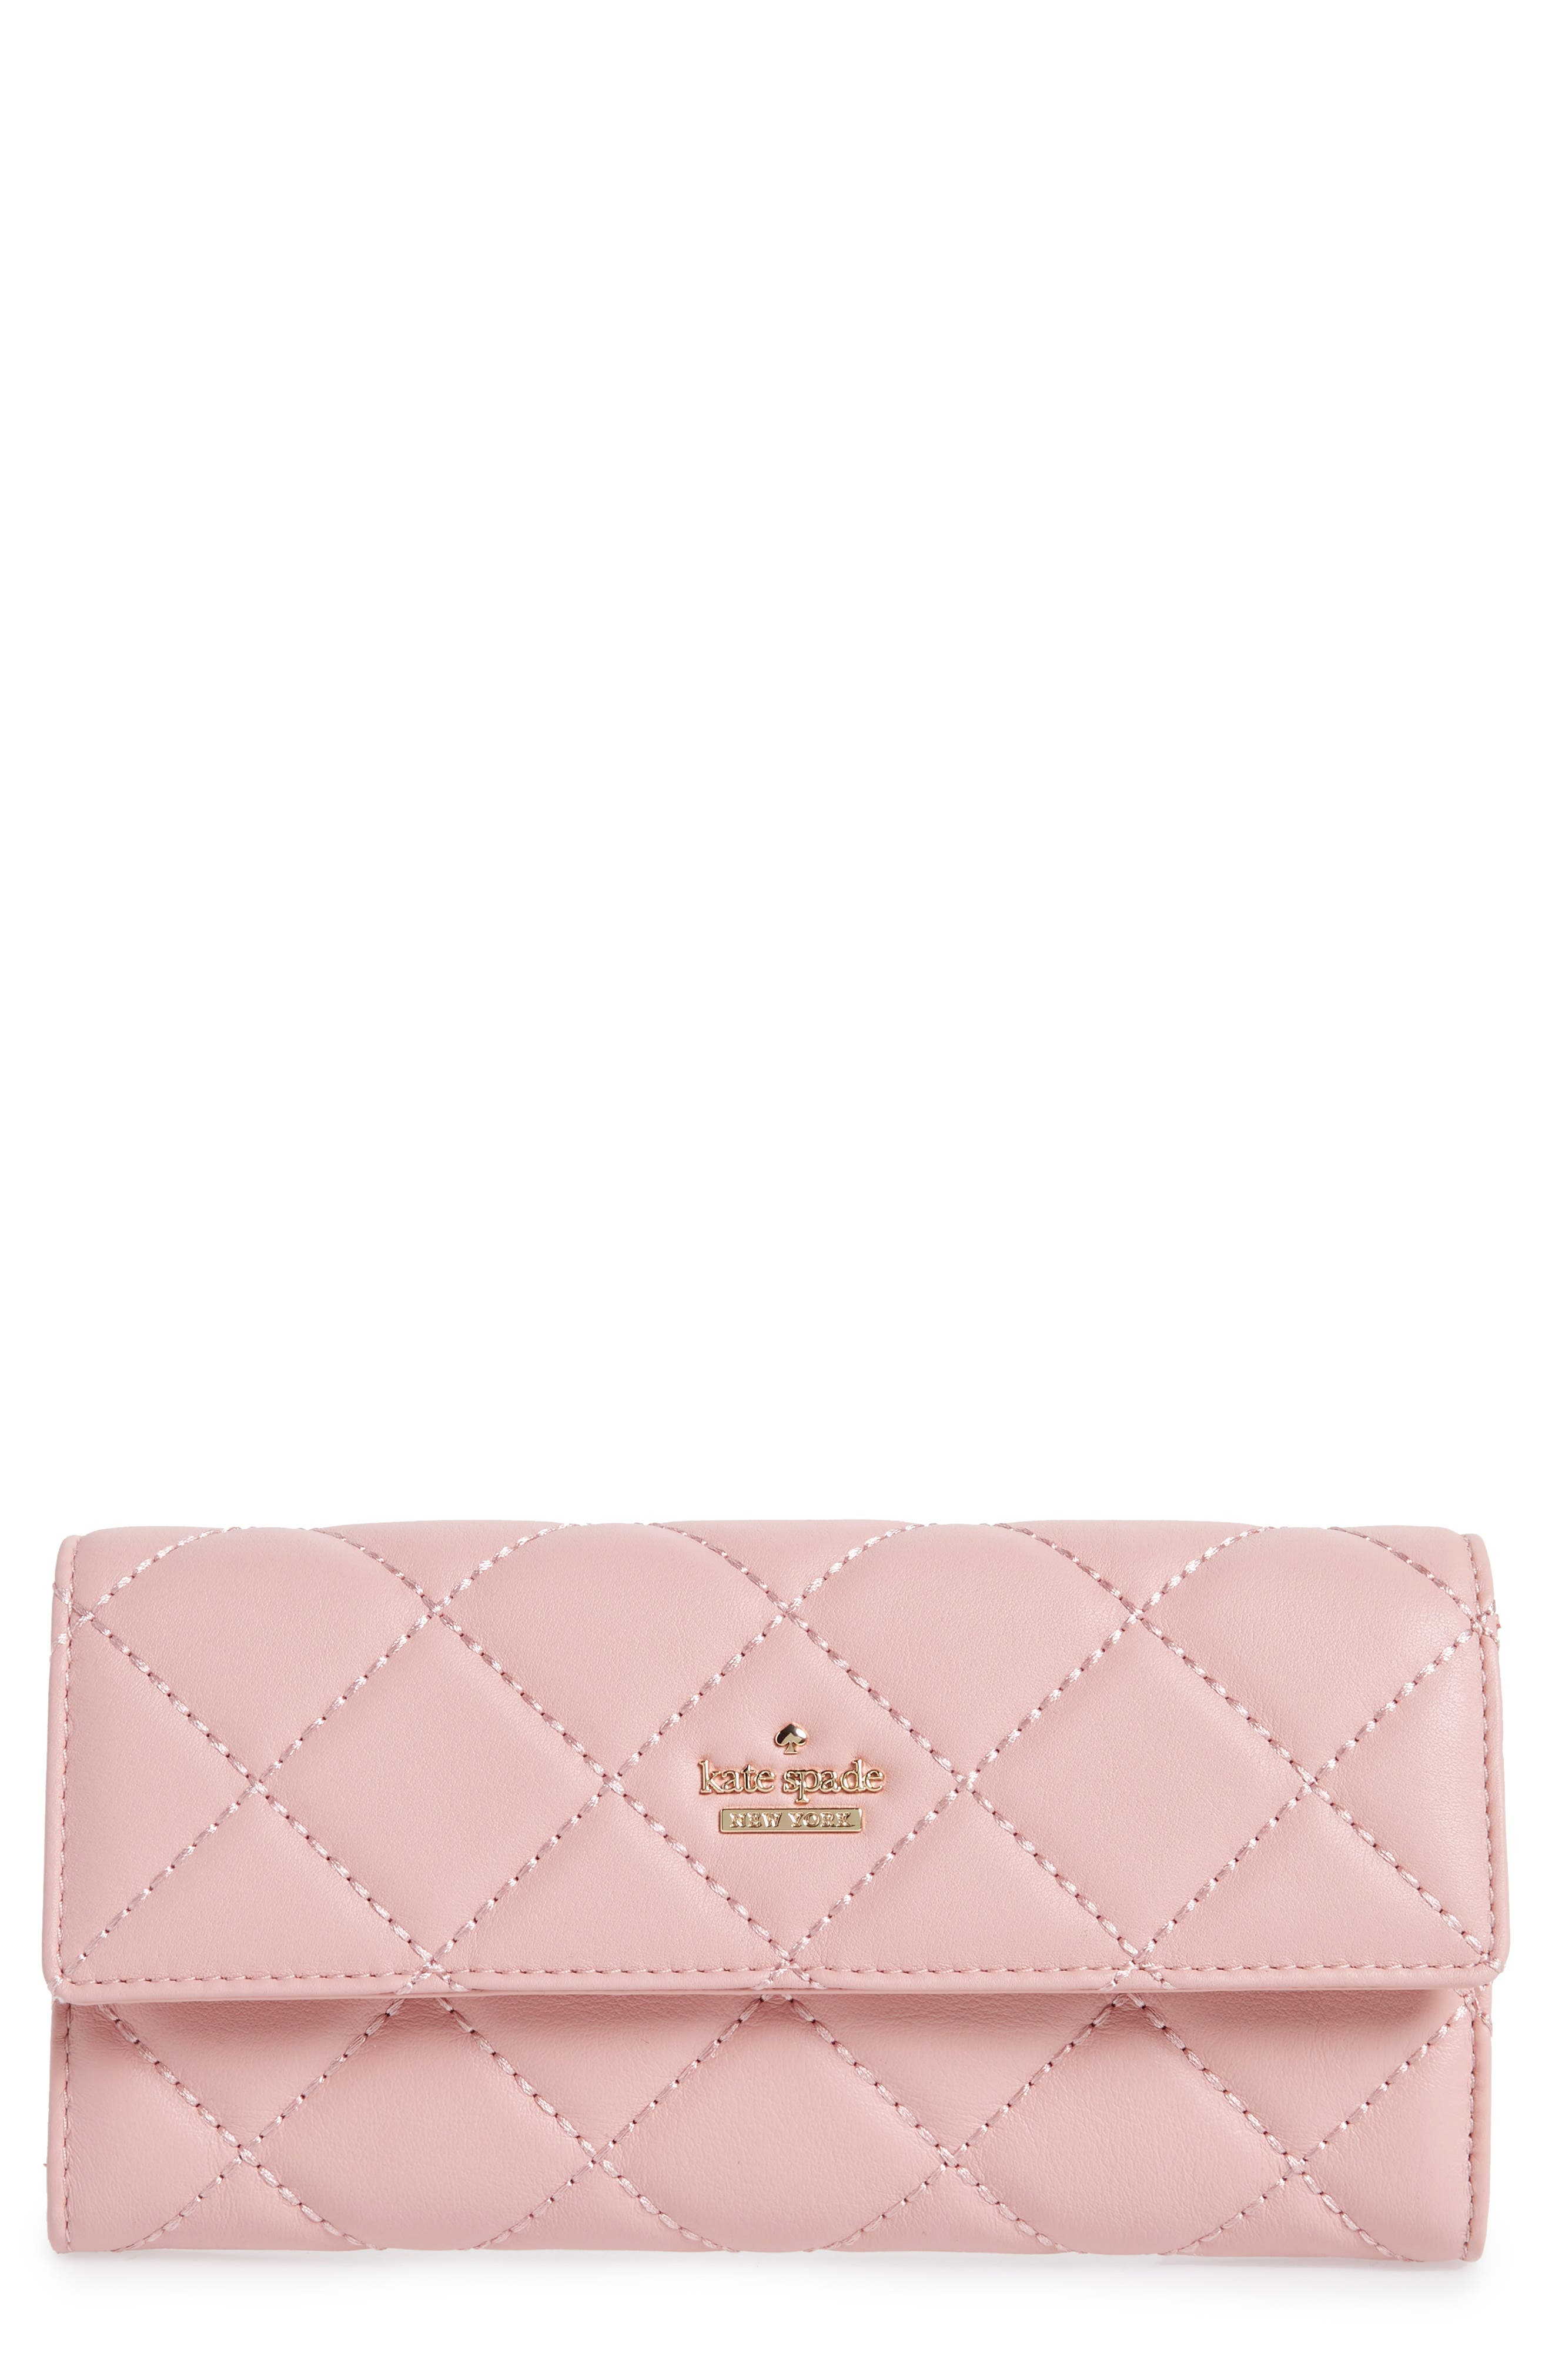 emerson place - kinsley quilted leather wallet,                         Main,                         color, 650